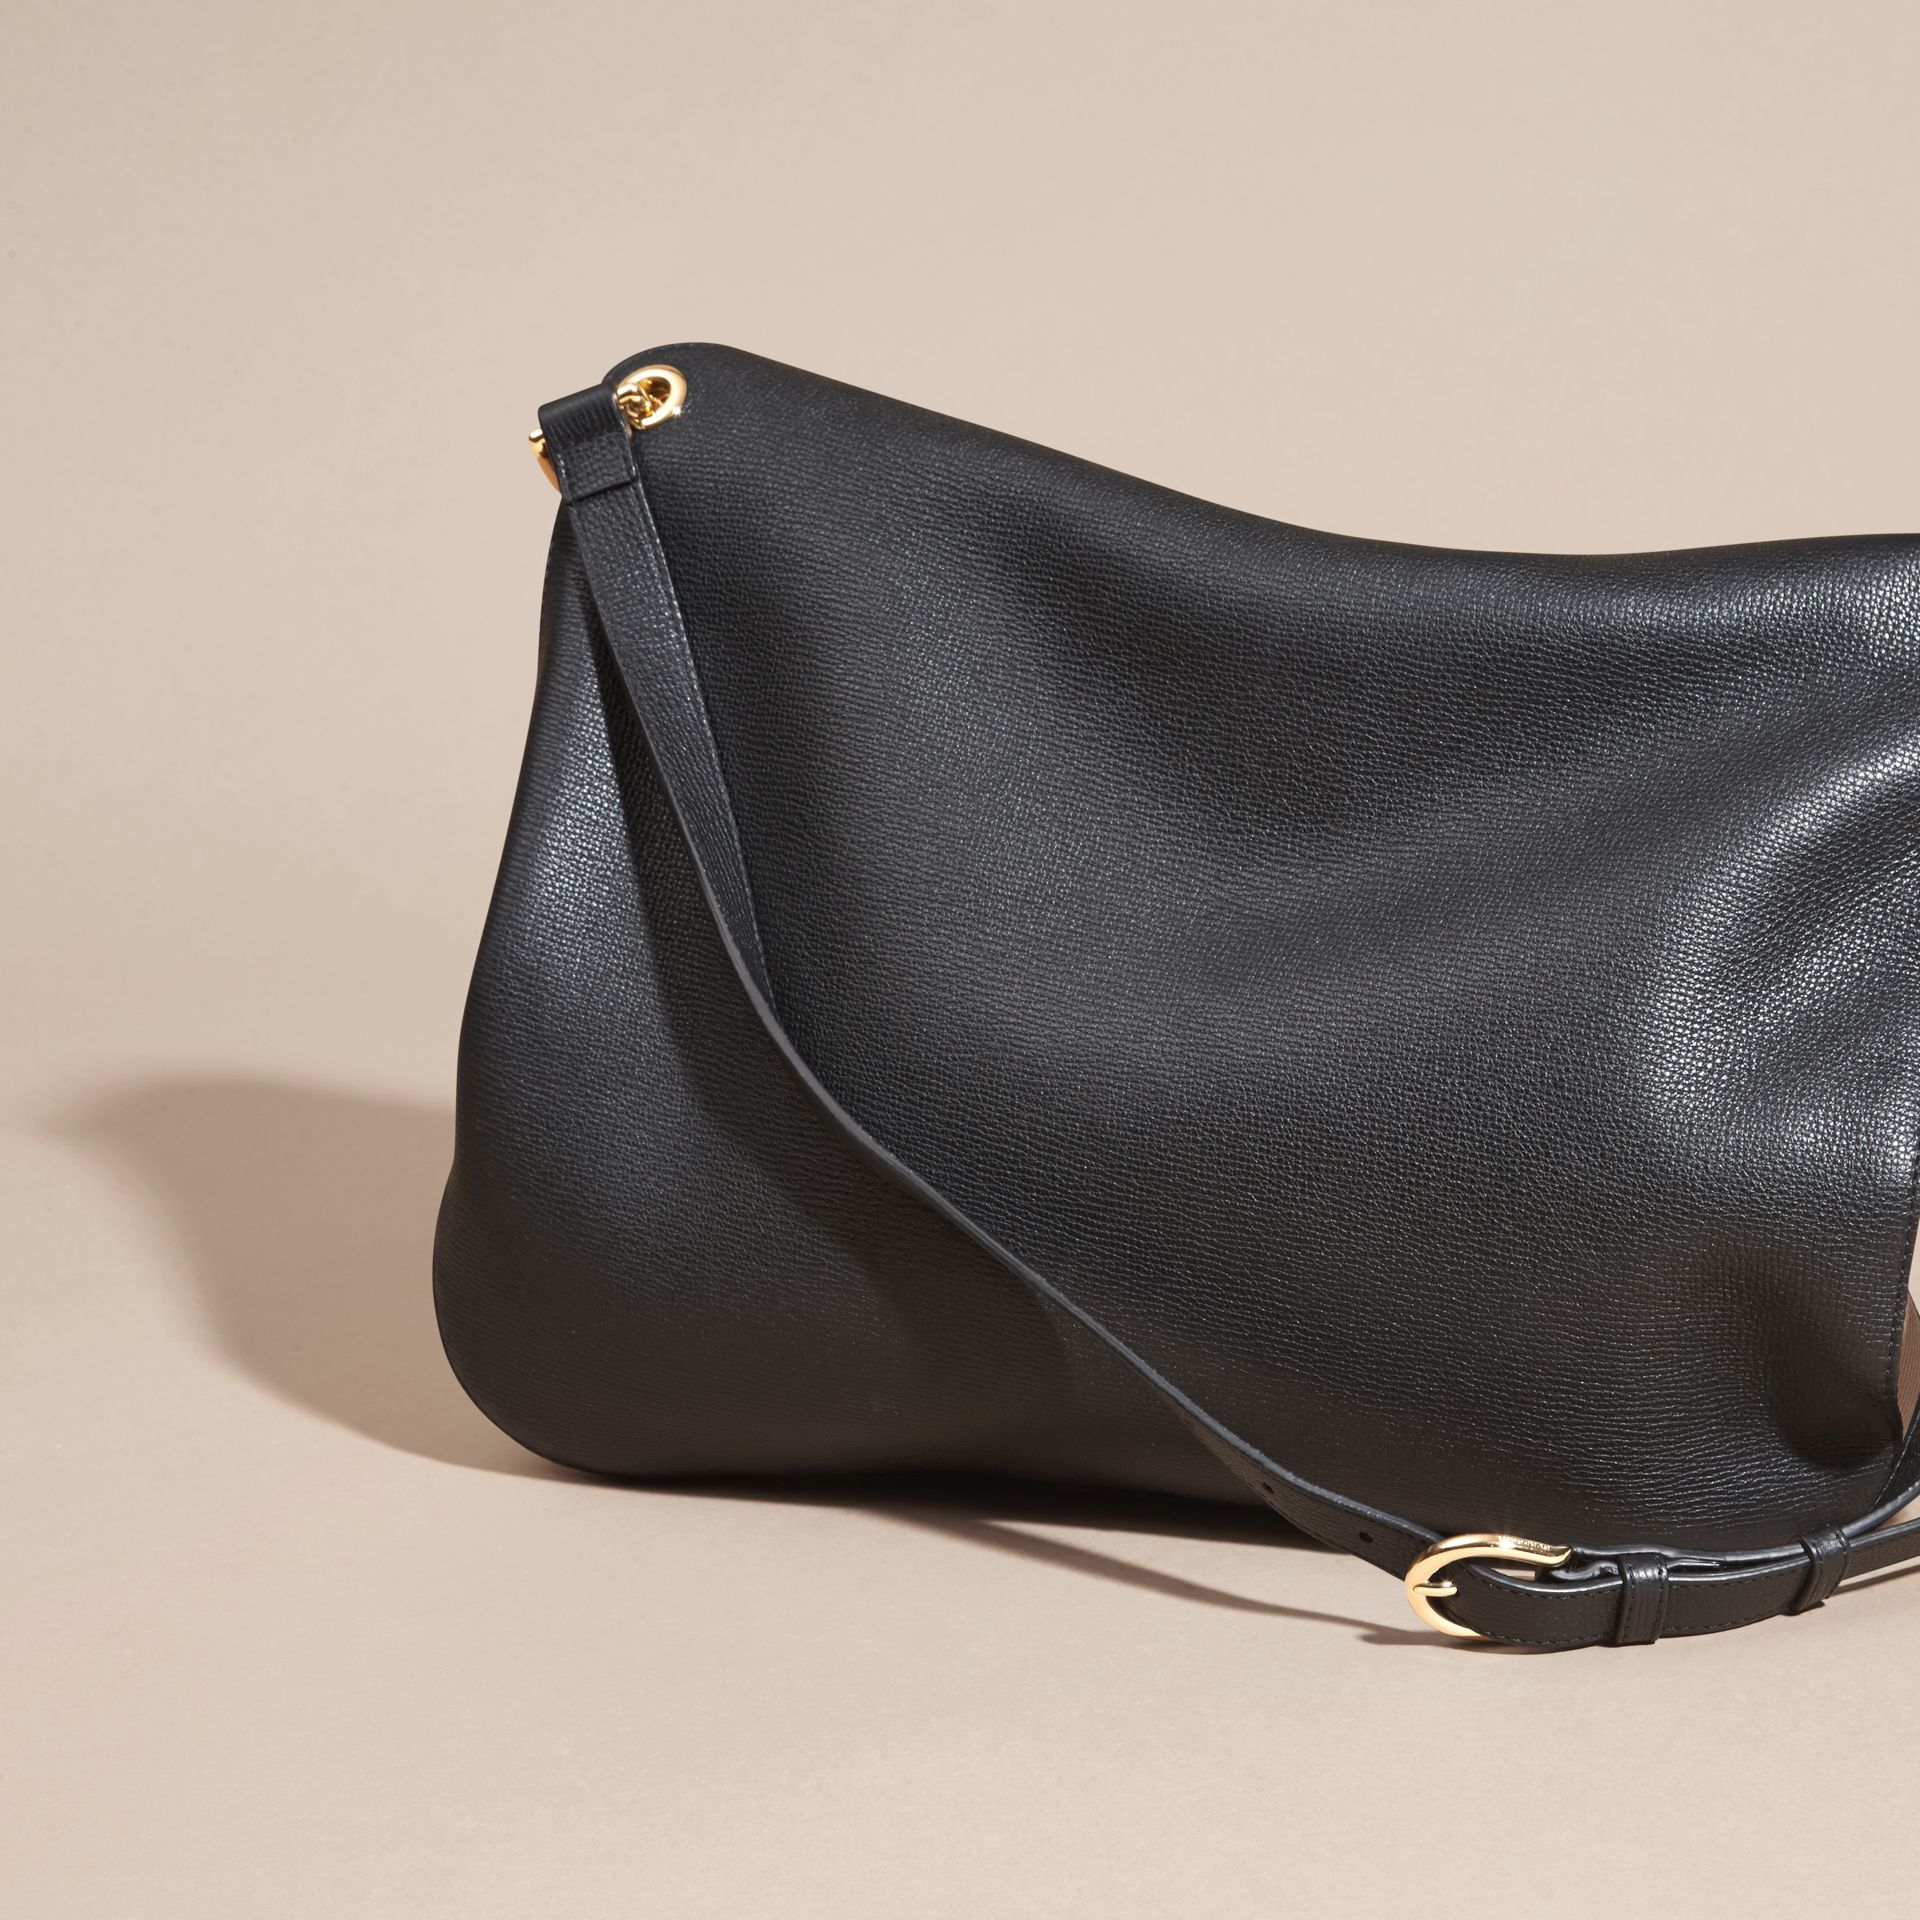 Black Grainy Leather and House Check Shoulder Bag Black - gallery image 4